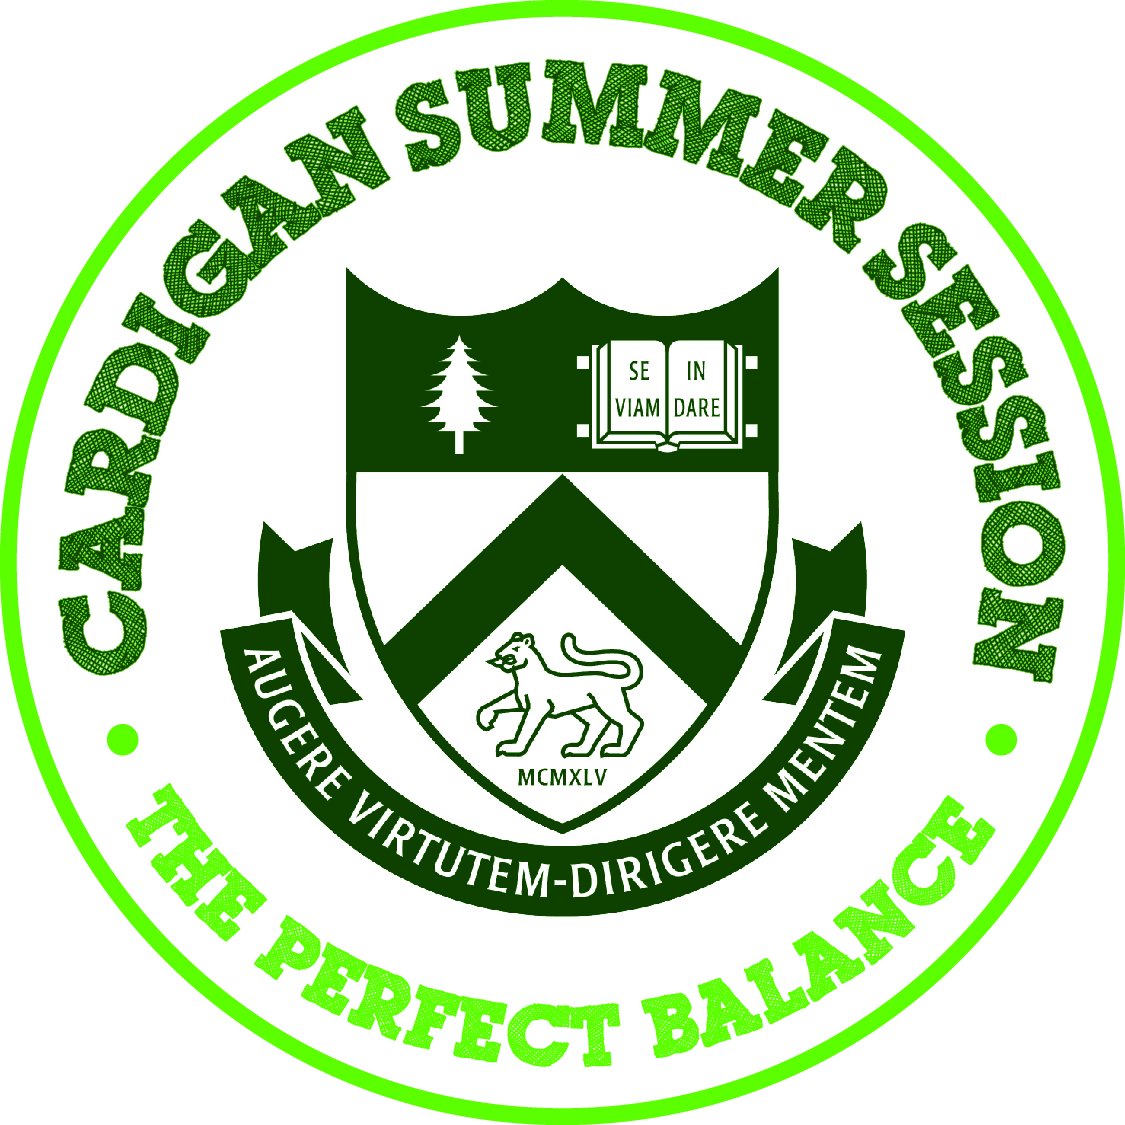 Summer Program Summer Session at Cardigan Mountain School